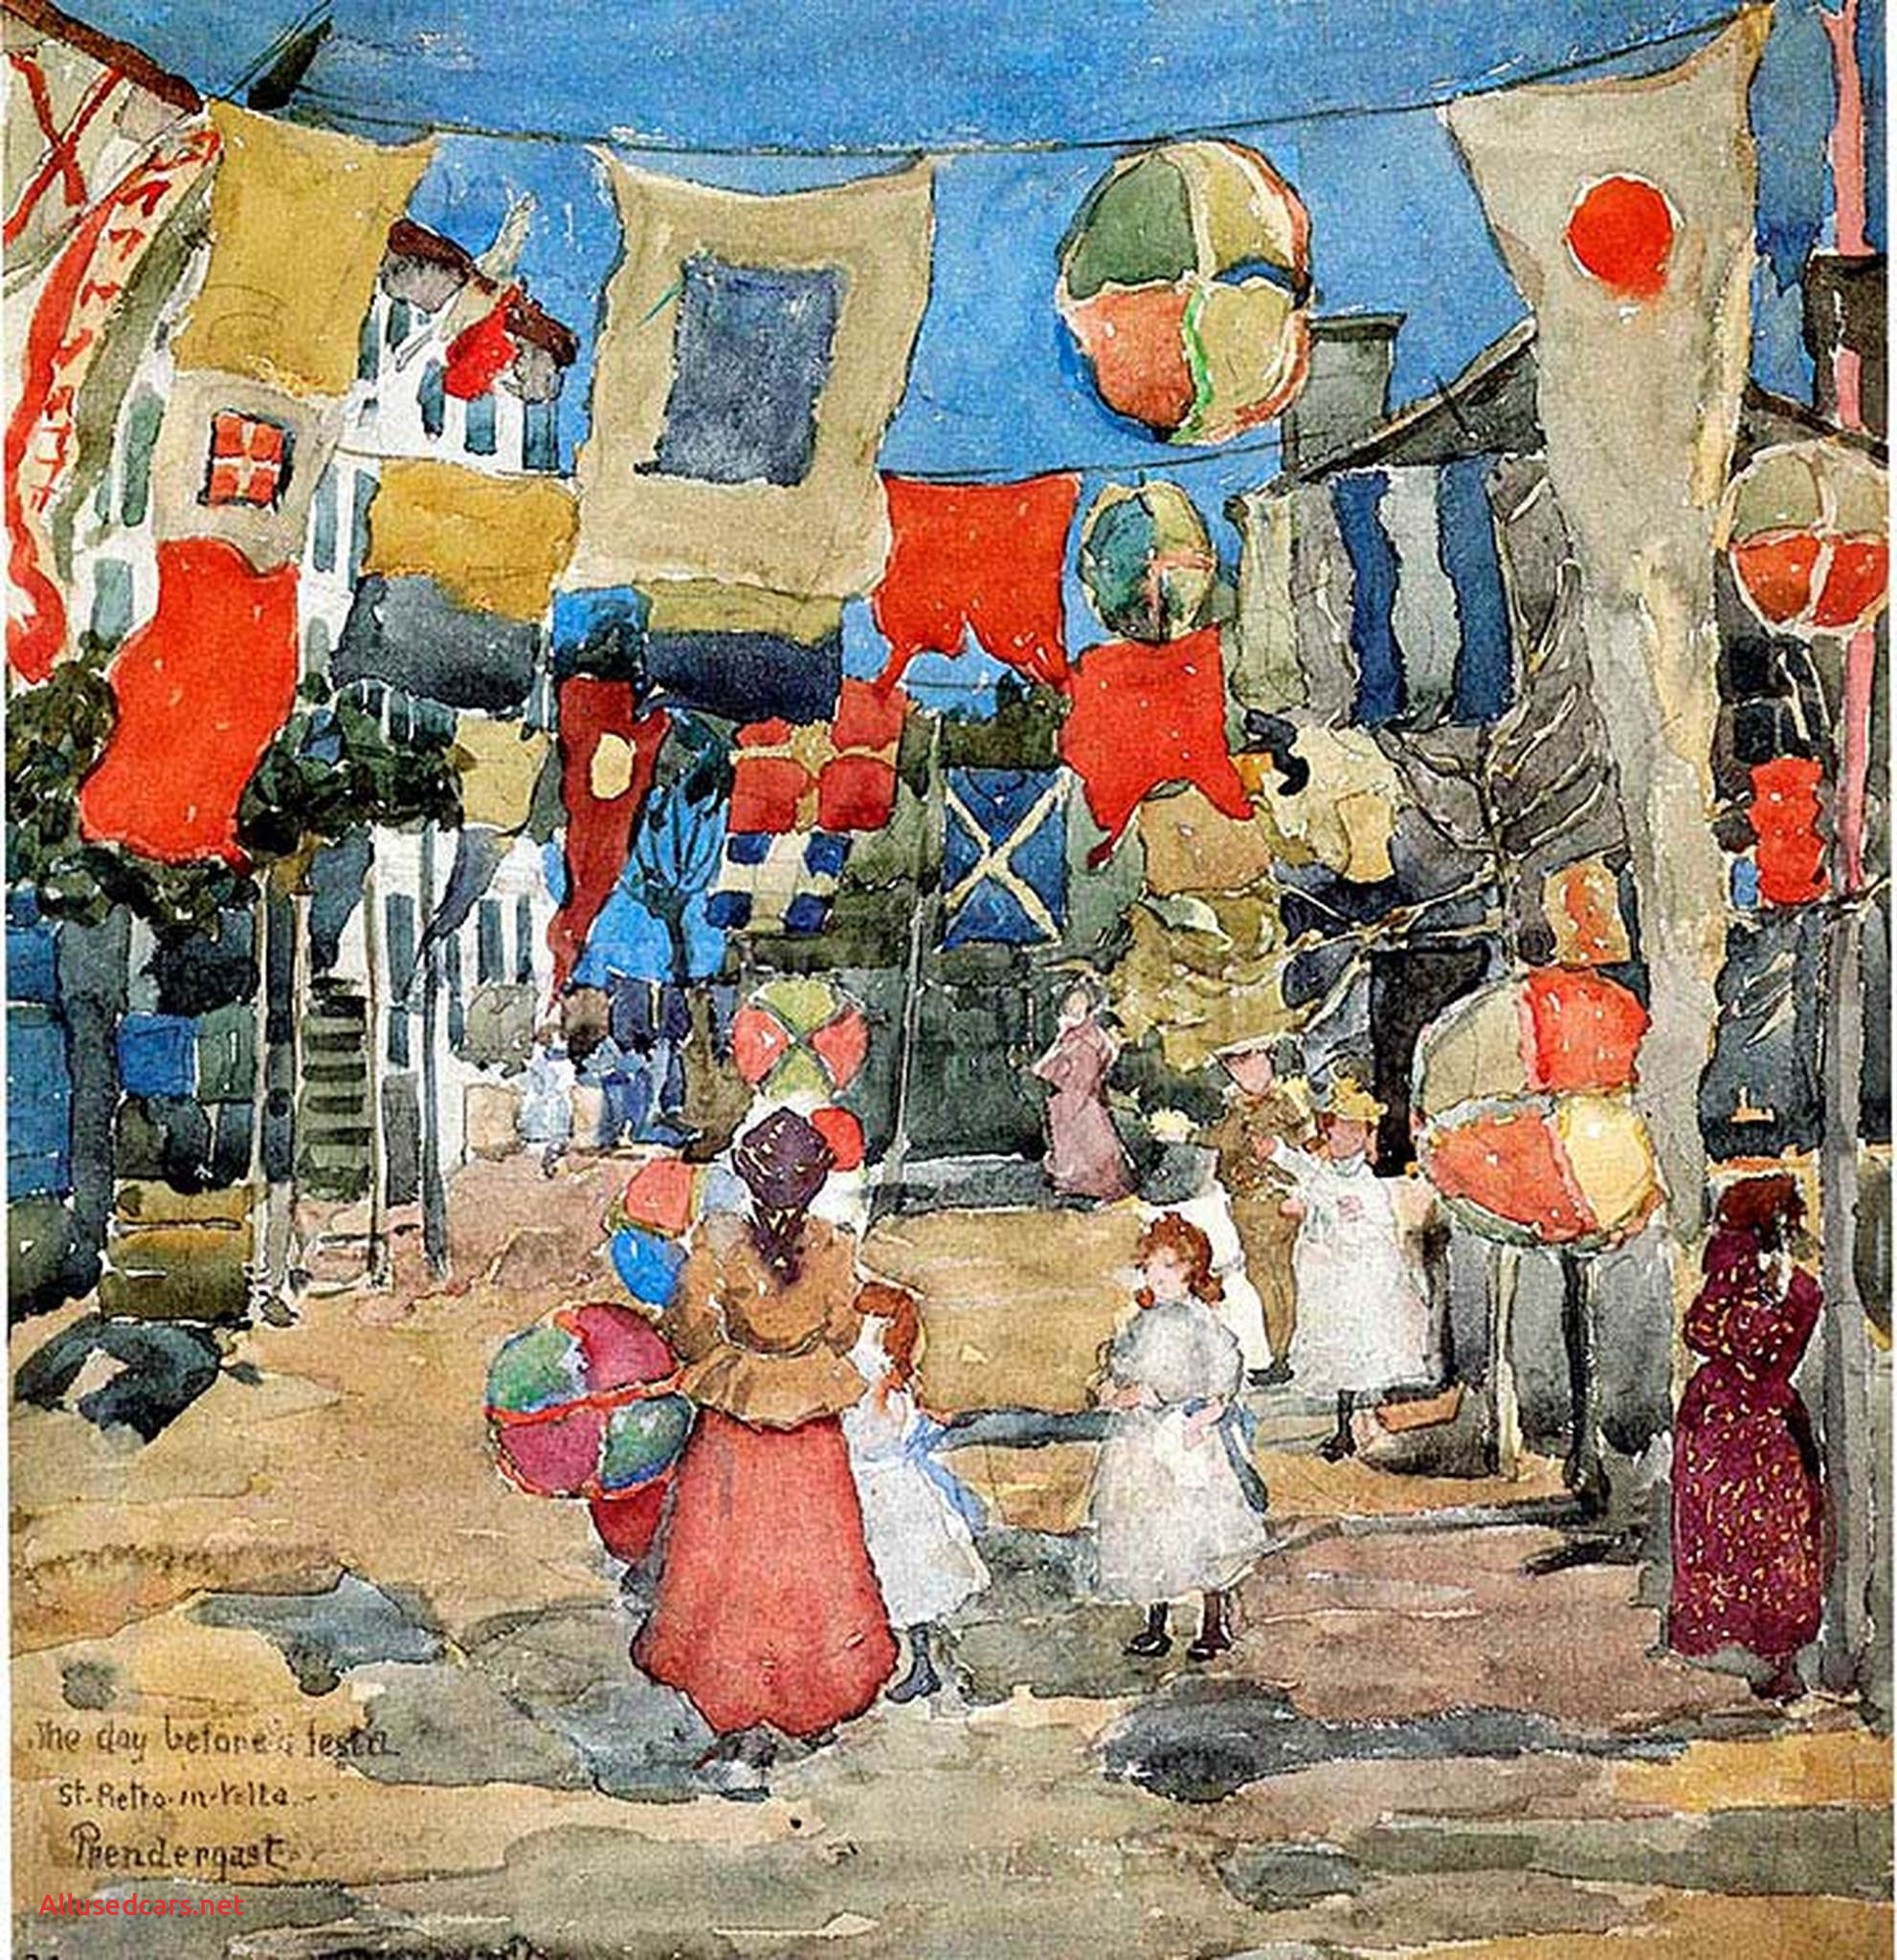 Fiesta St for Sale Beautiful Fiesvenice S Pietro In Vol Also Known as the Day before the Fiesta St Pietro In Volte by Maurice Prendergast